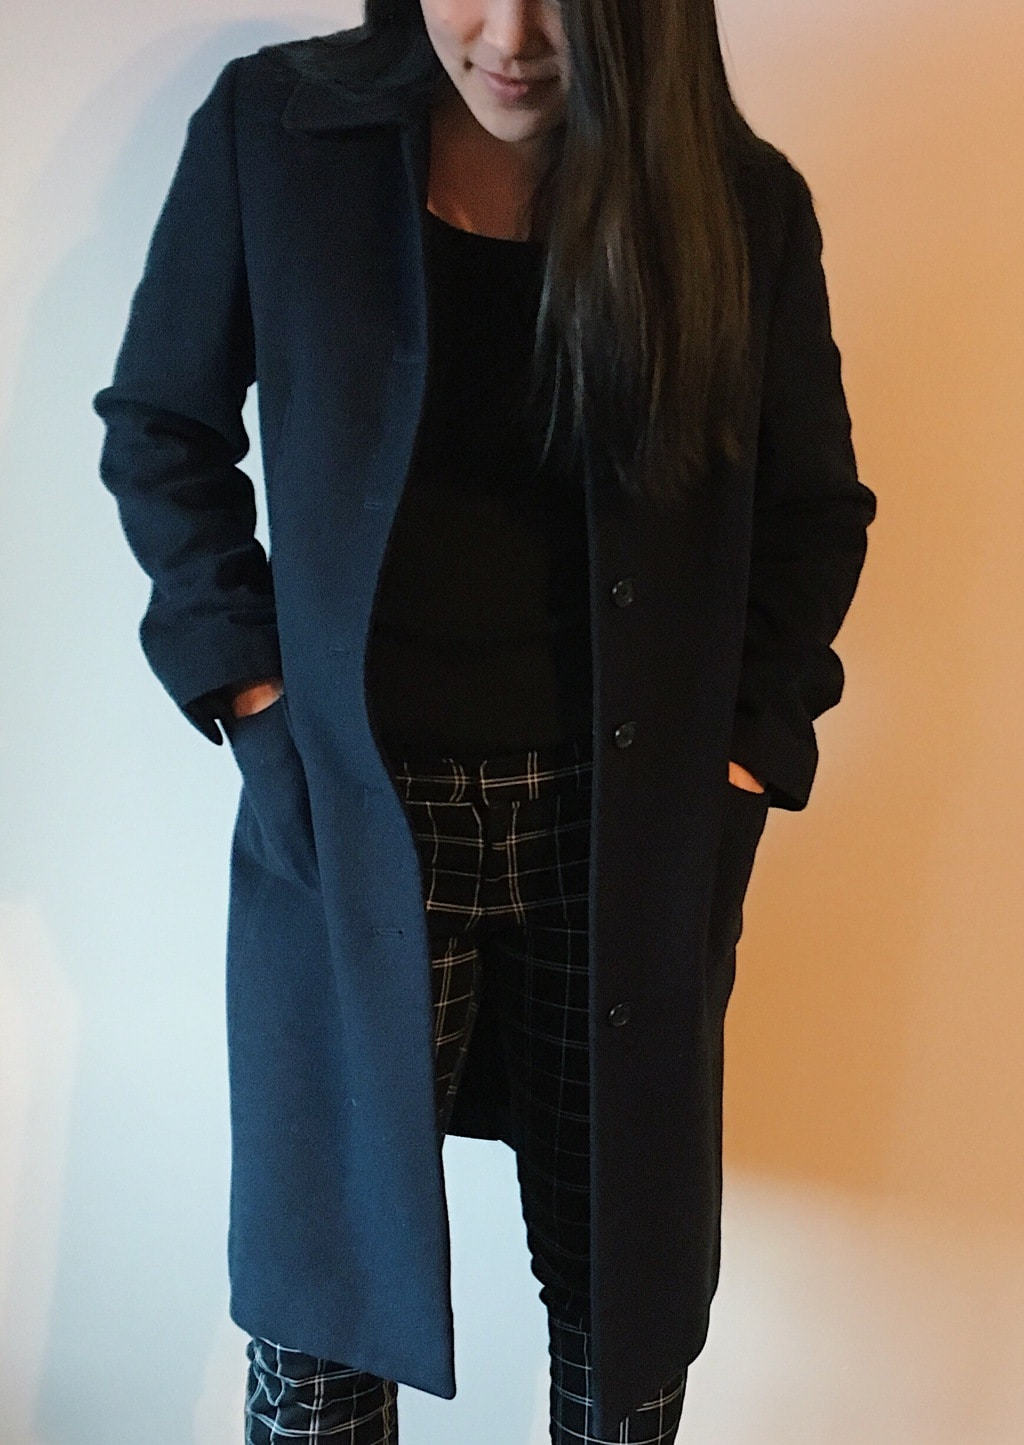 Yan Ni sports a long line navy peacoat with a black sweater top and black and white plaid pants.